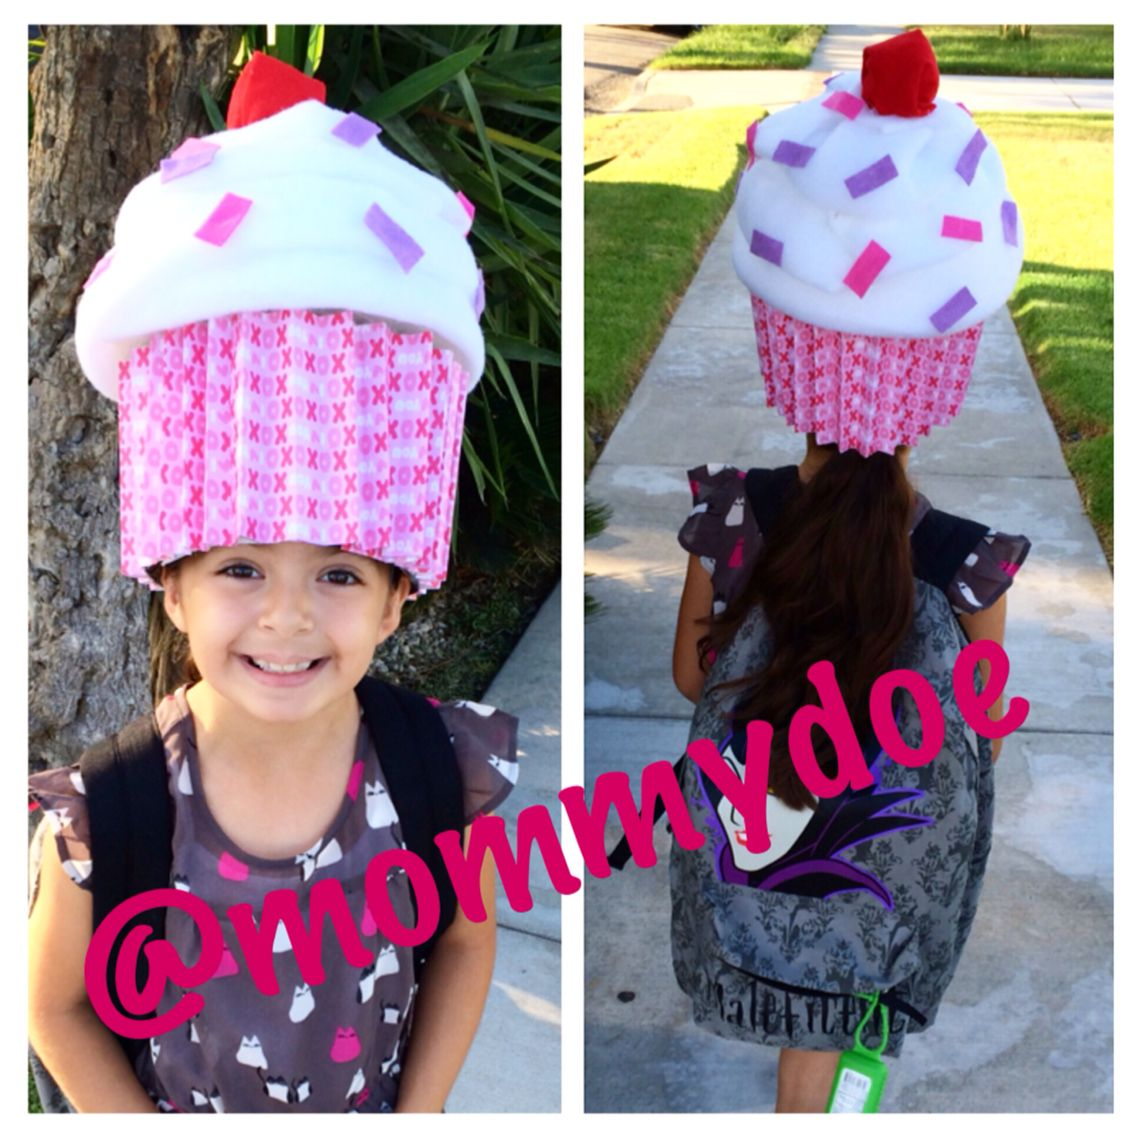 Cupcake Hat, For Crazy Hat Day! Bummed I Didn't Take Any